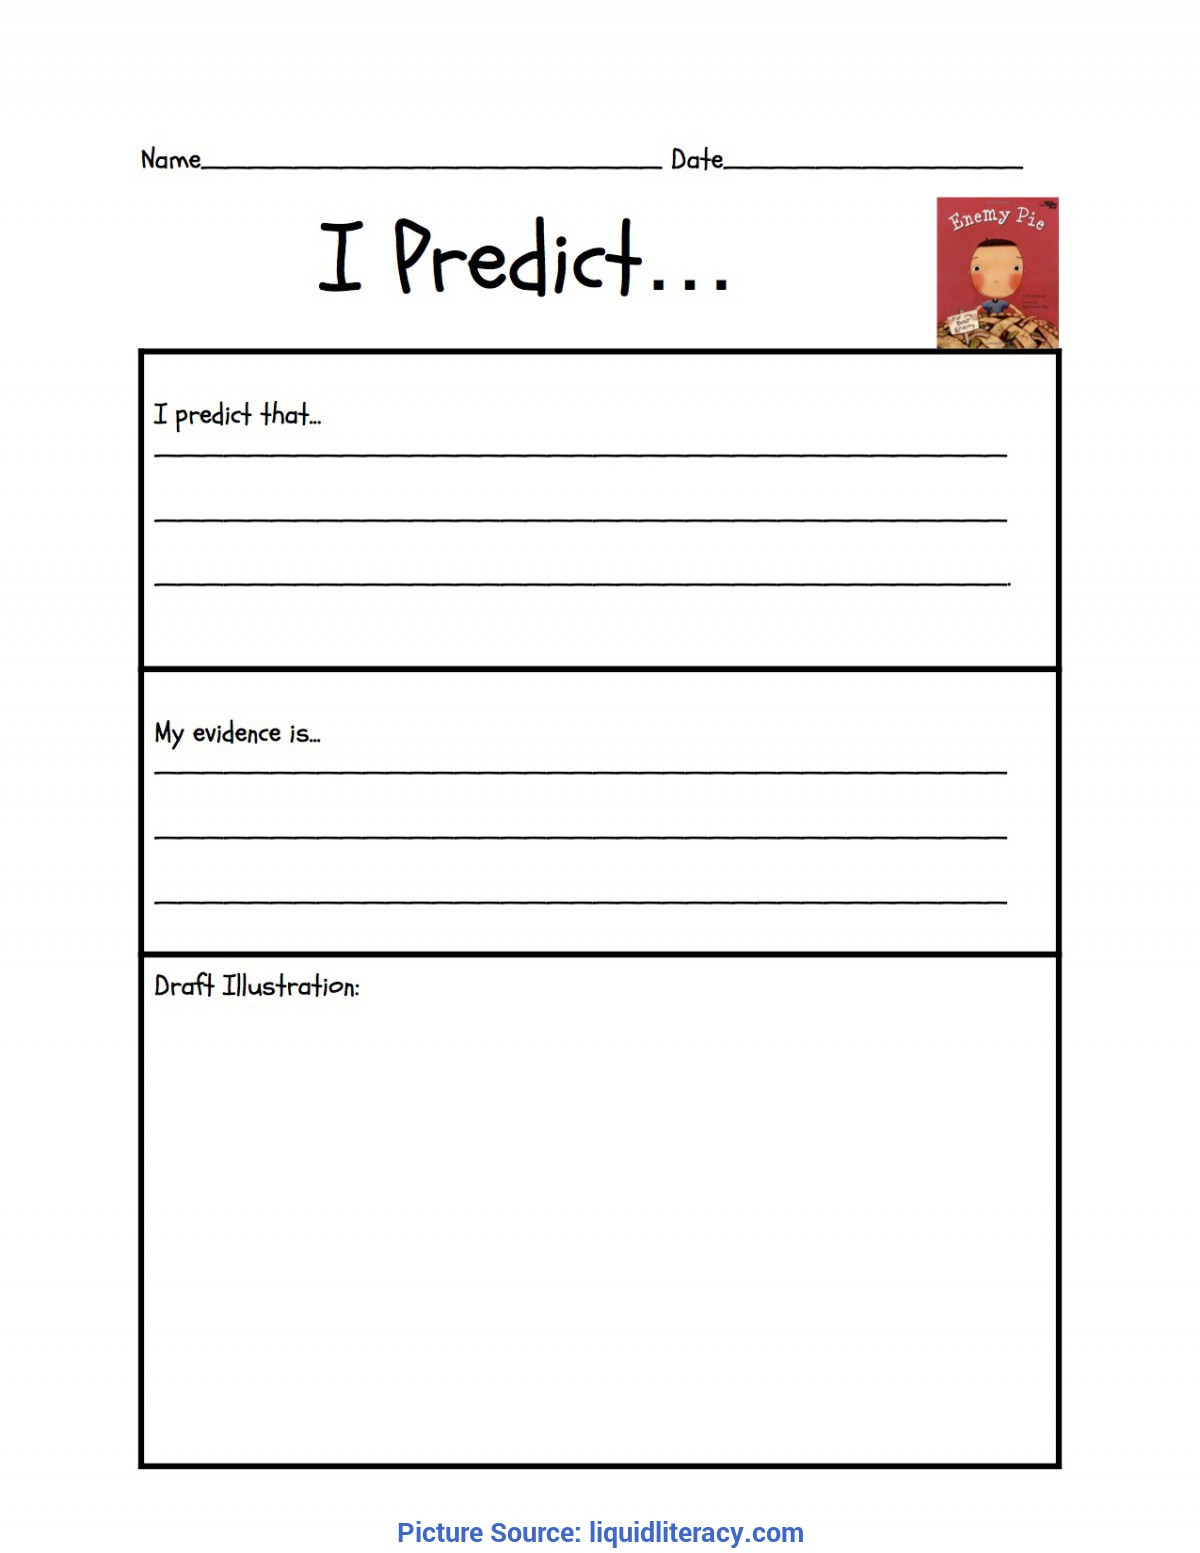 Prediction Worksheets for 3rd Grade Math Lesson Plan Template Business 3rd Grade Plans Ota Tech